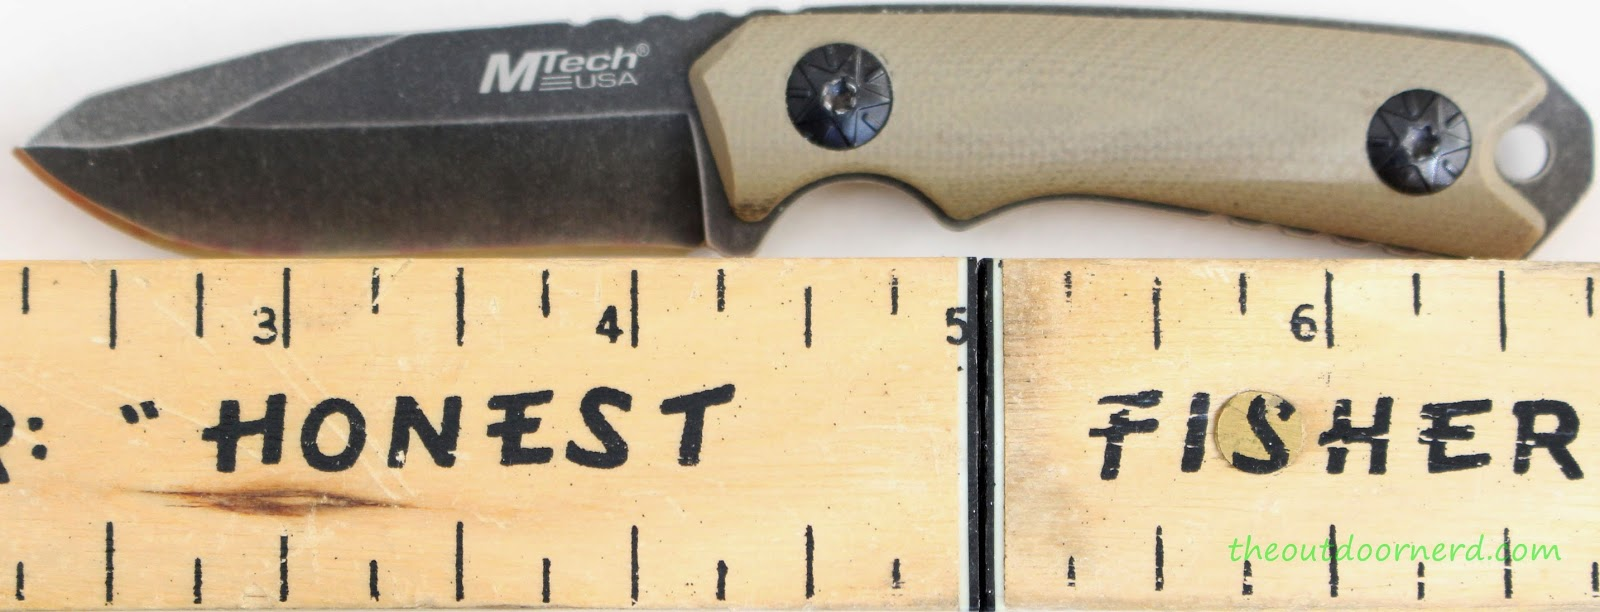 MTECH MT-20-30 Fixed Blade Knife: Next To Ruler